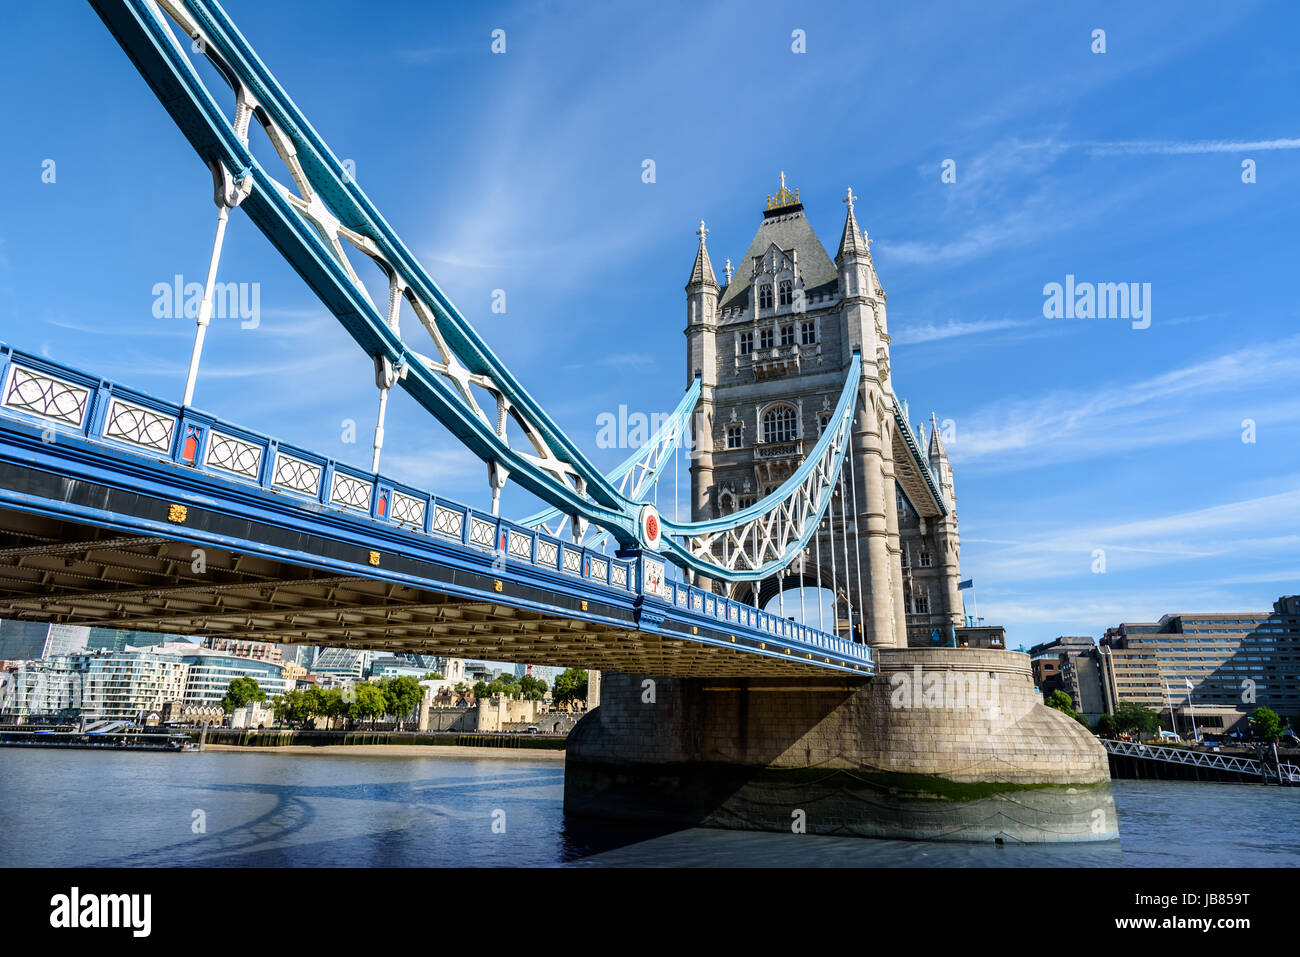 view of famous Tower Bridge over the River Thames, London, UK, England - Stock Image